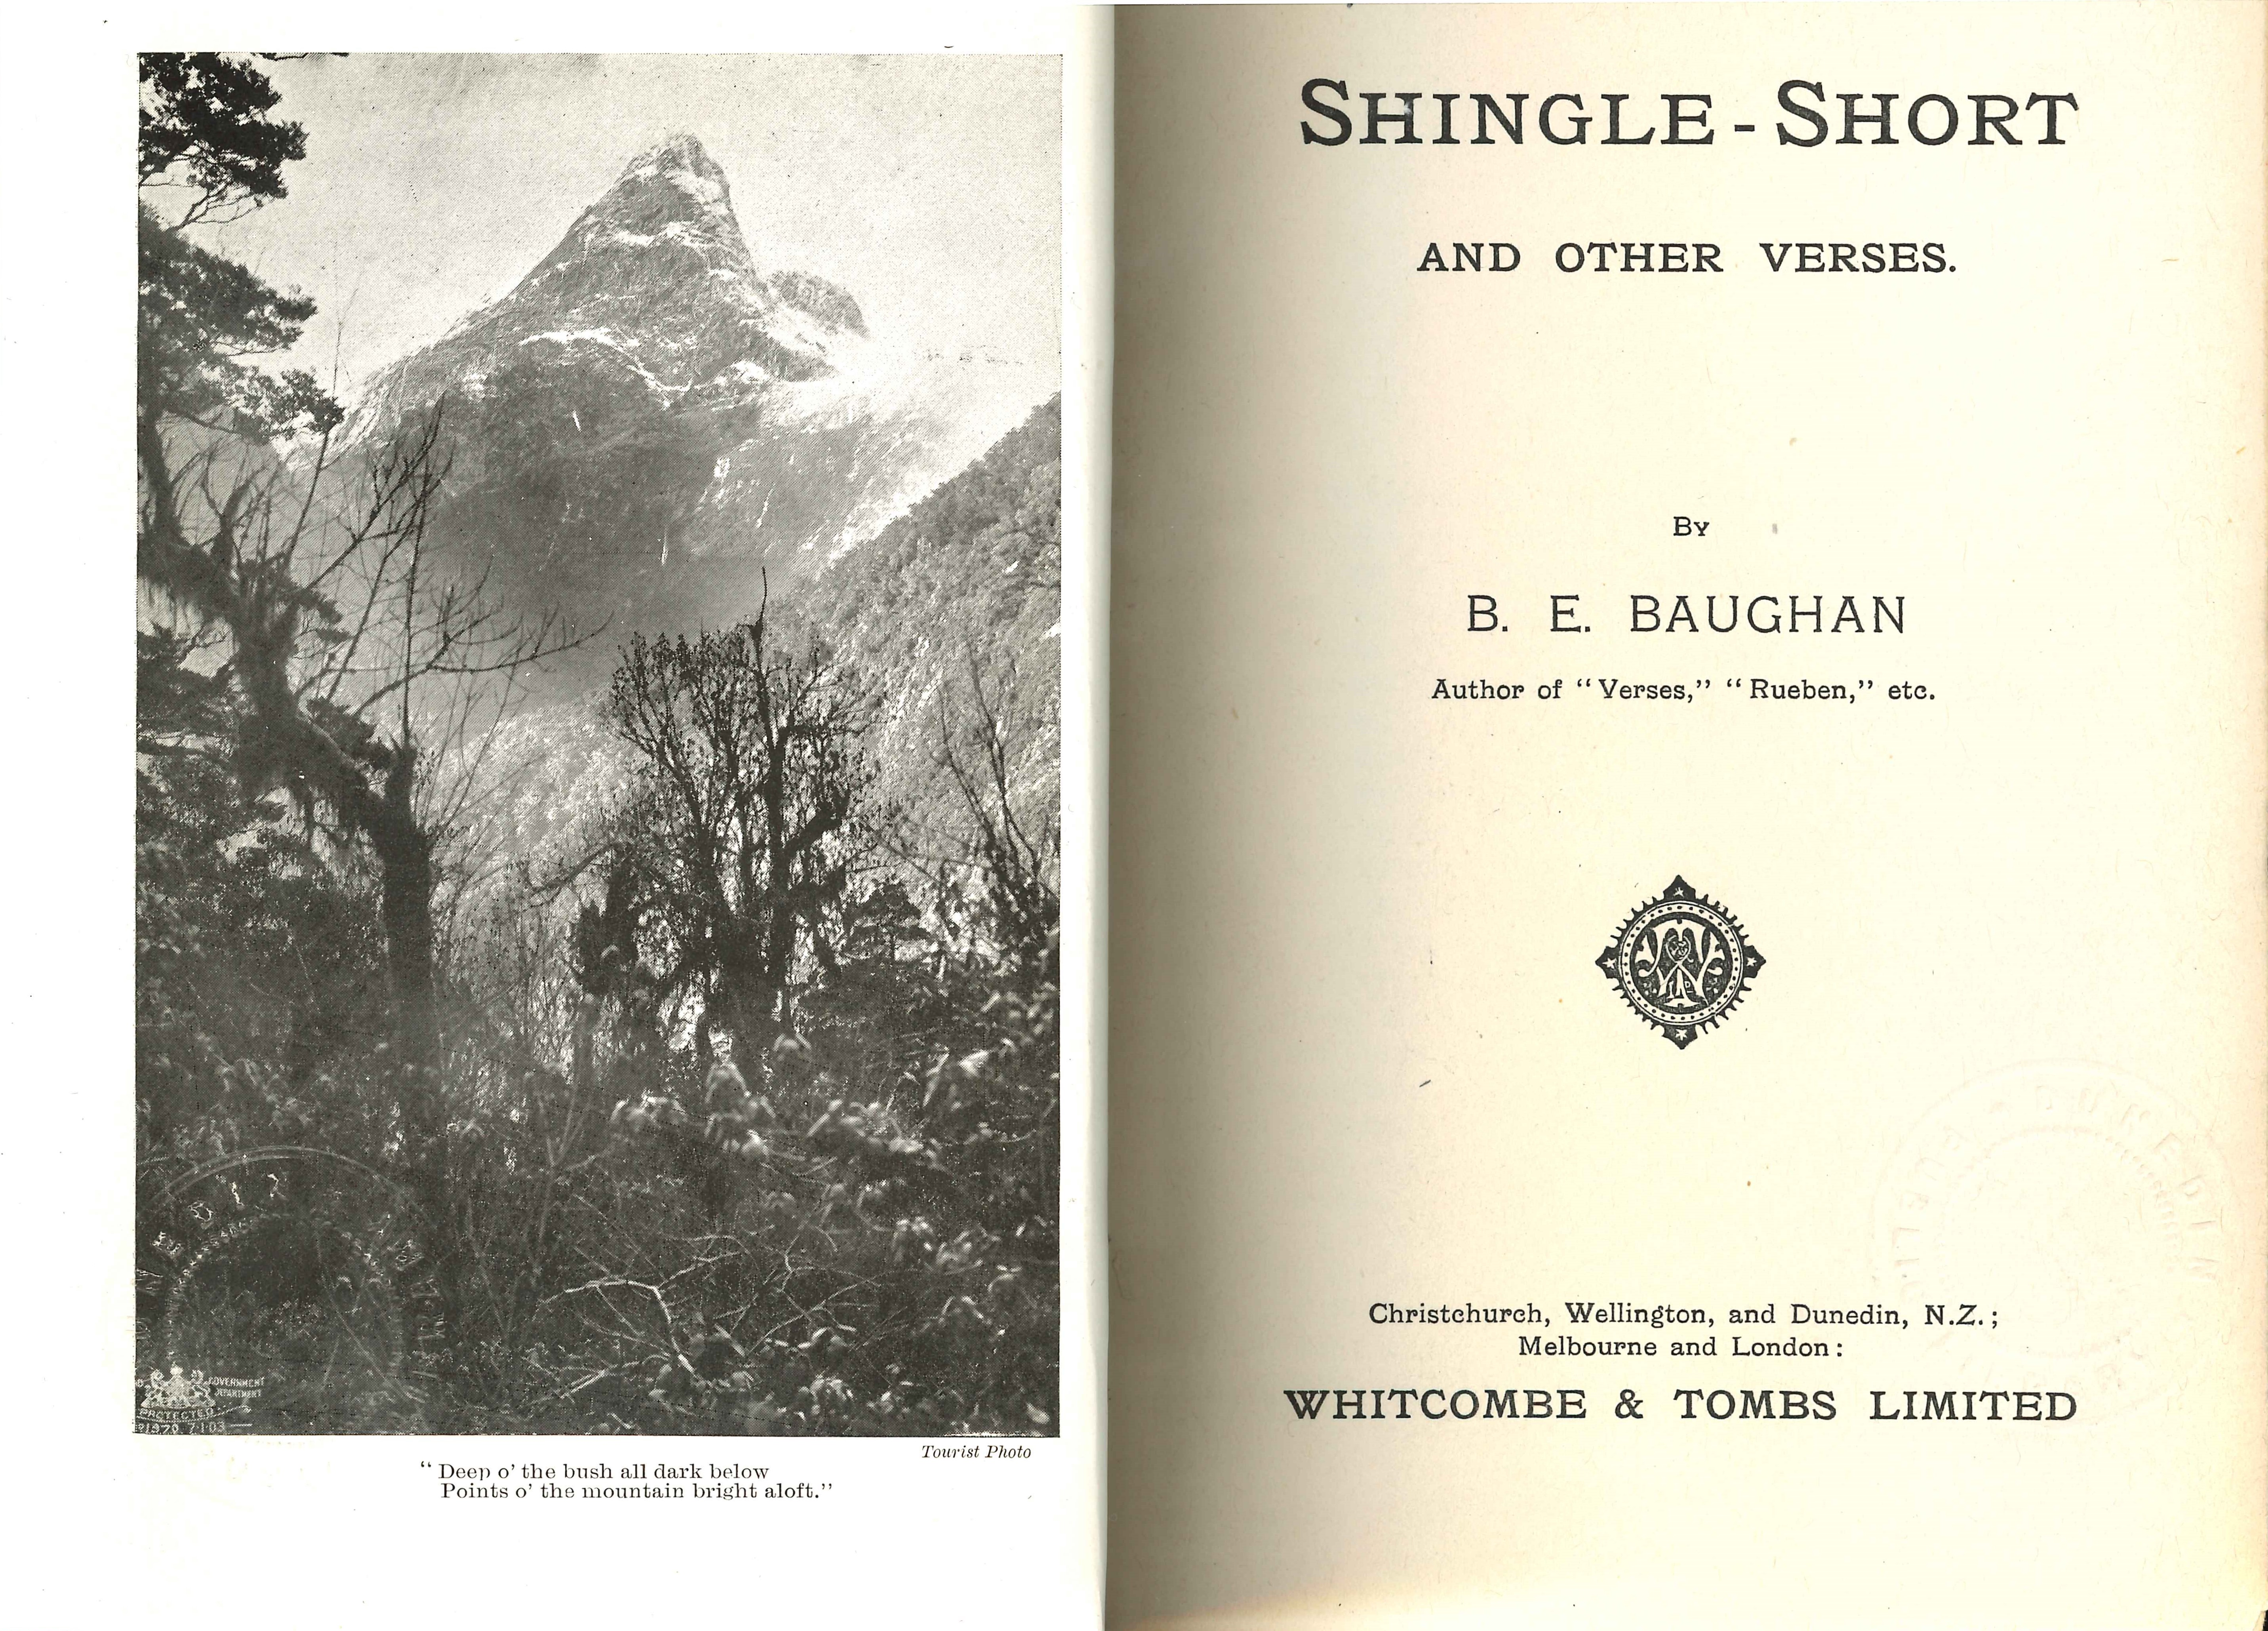 Blanche Baughan. Shingle-short and other verses. Christchurch: Whitcombe & Tombs, 1908.